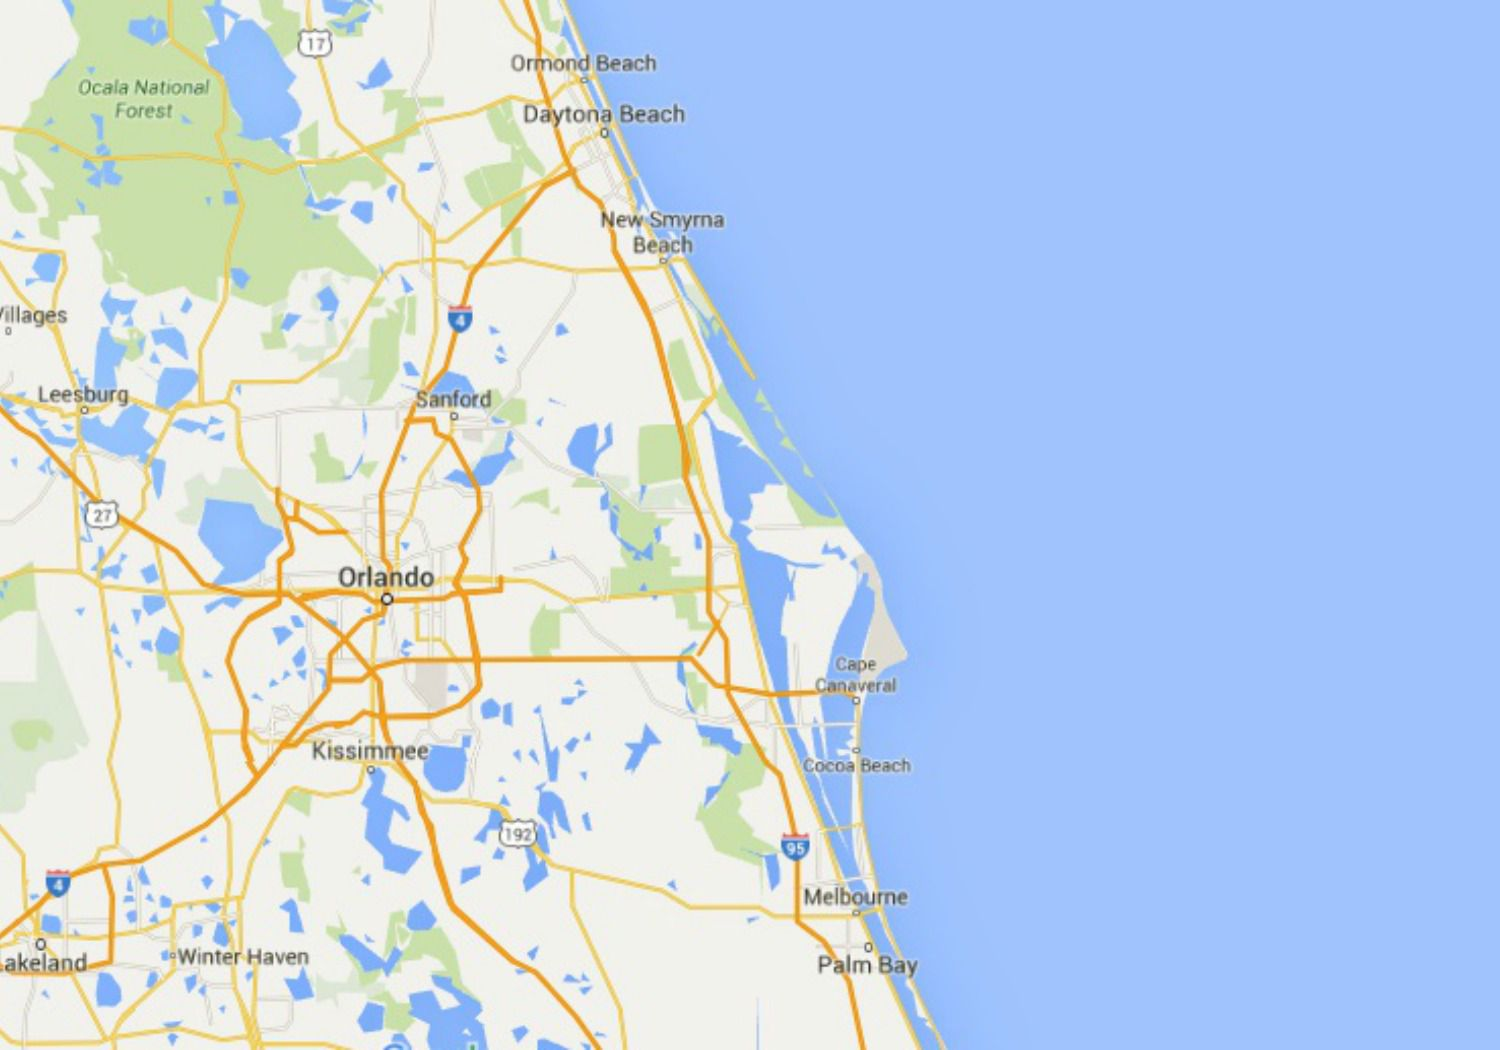 Maps of Florida: Orlando, Tampa, Miami, Keys, and More Daytona Beach Fl Map on